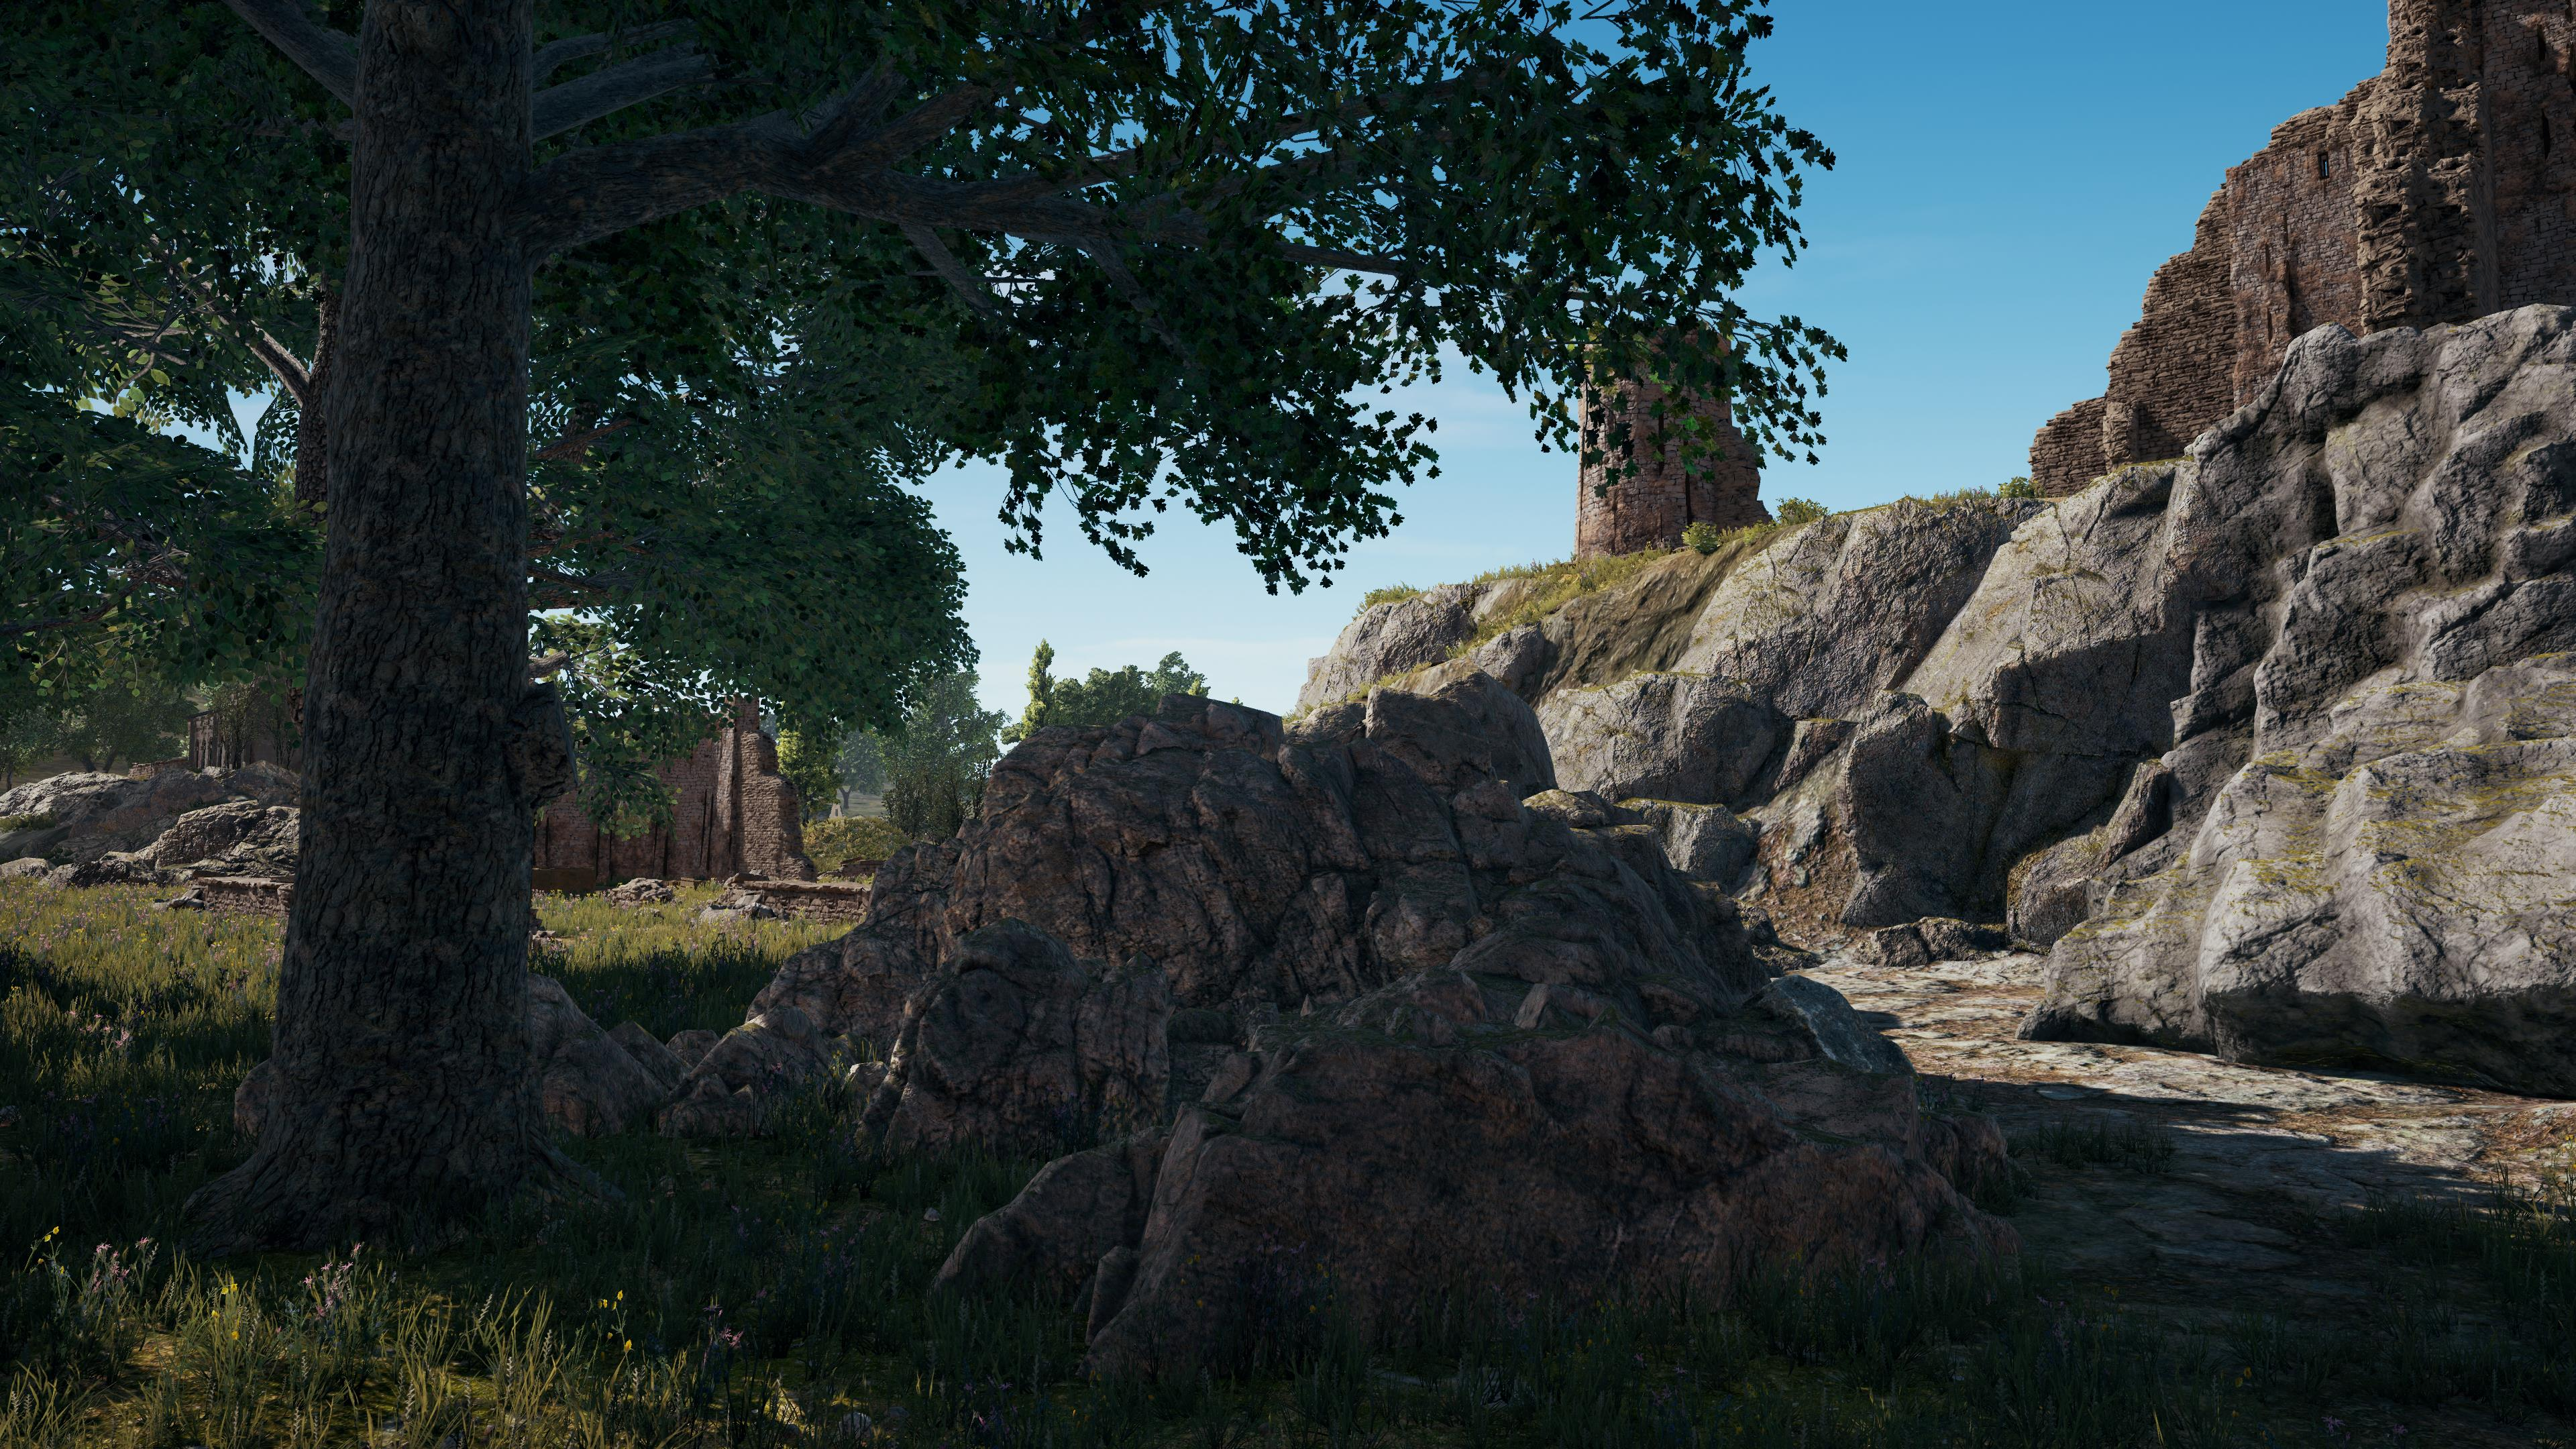 Top 13 Pubg Wallpapers In Full Hd For Pc And Phone: PlayerUnknown's Battlegrounds Gets Nvidia HBAO+ And